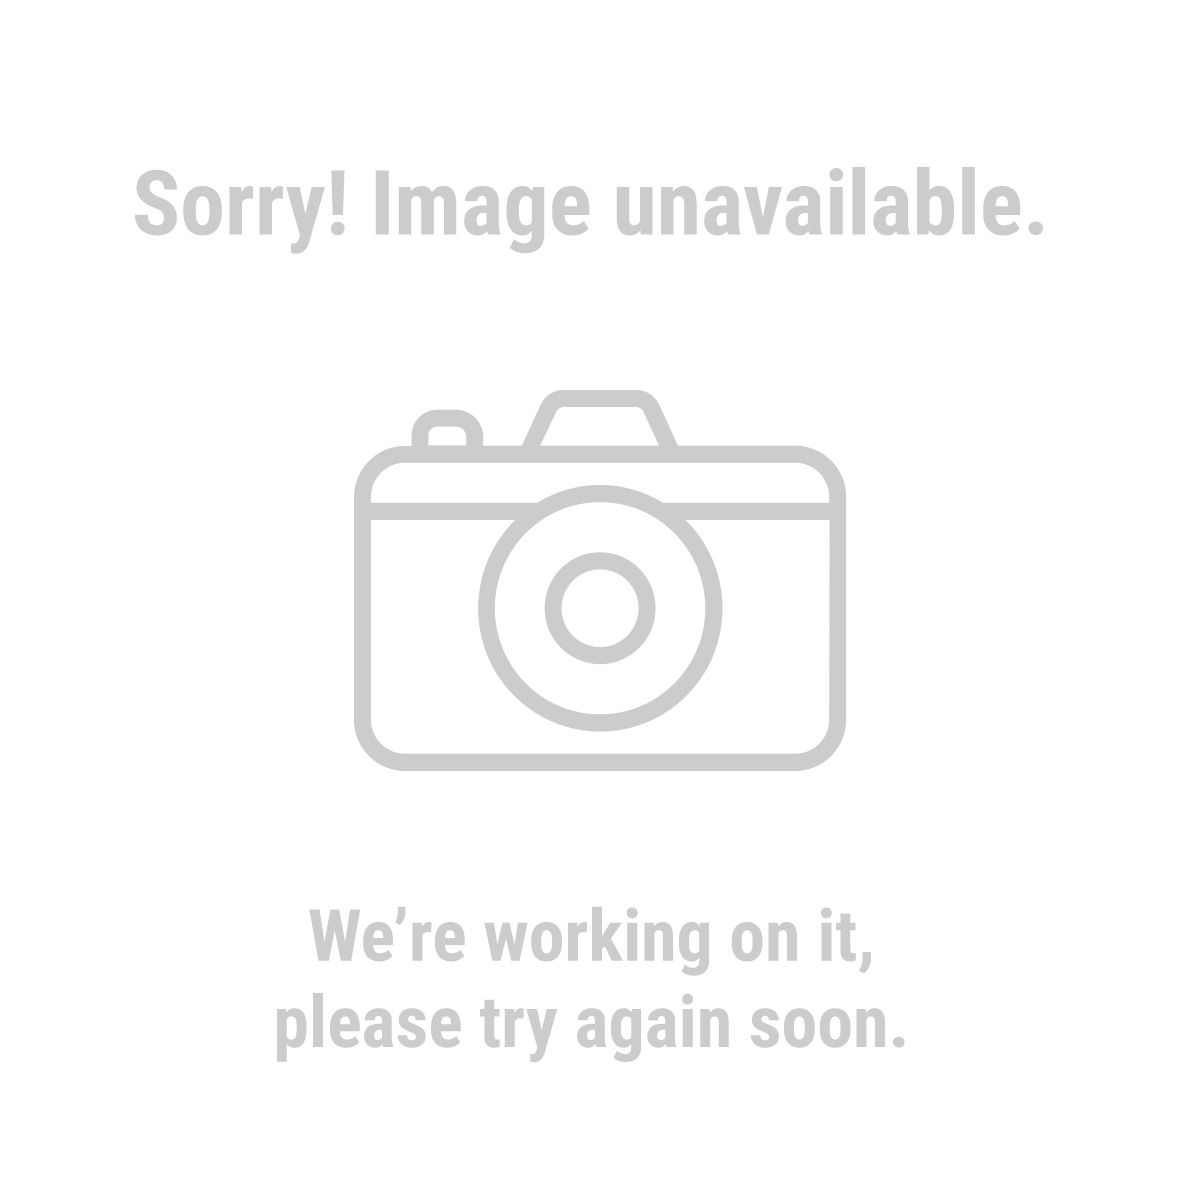 Central Pneumatic 60241 23 Gauge Pin Air Nailer